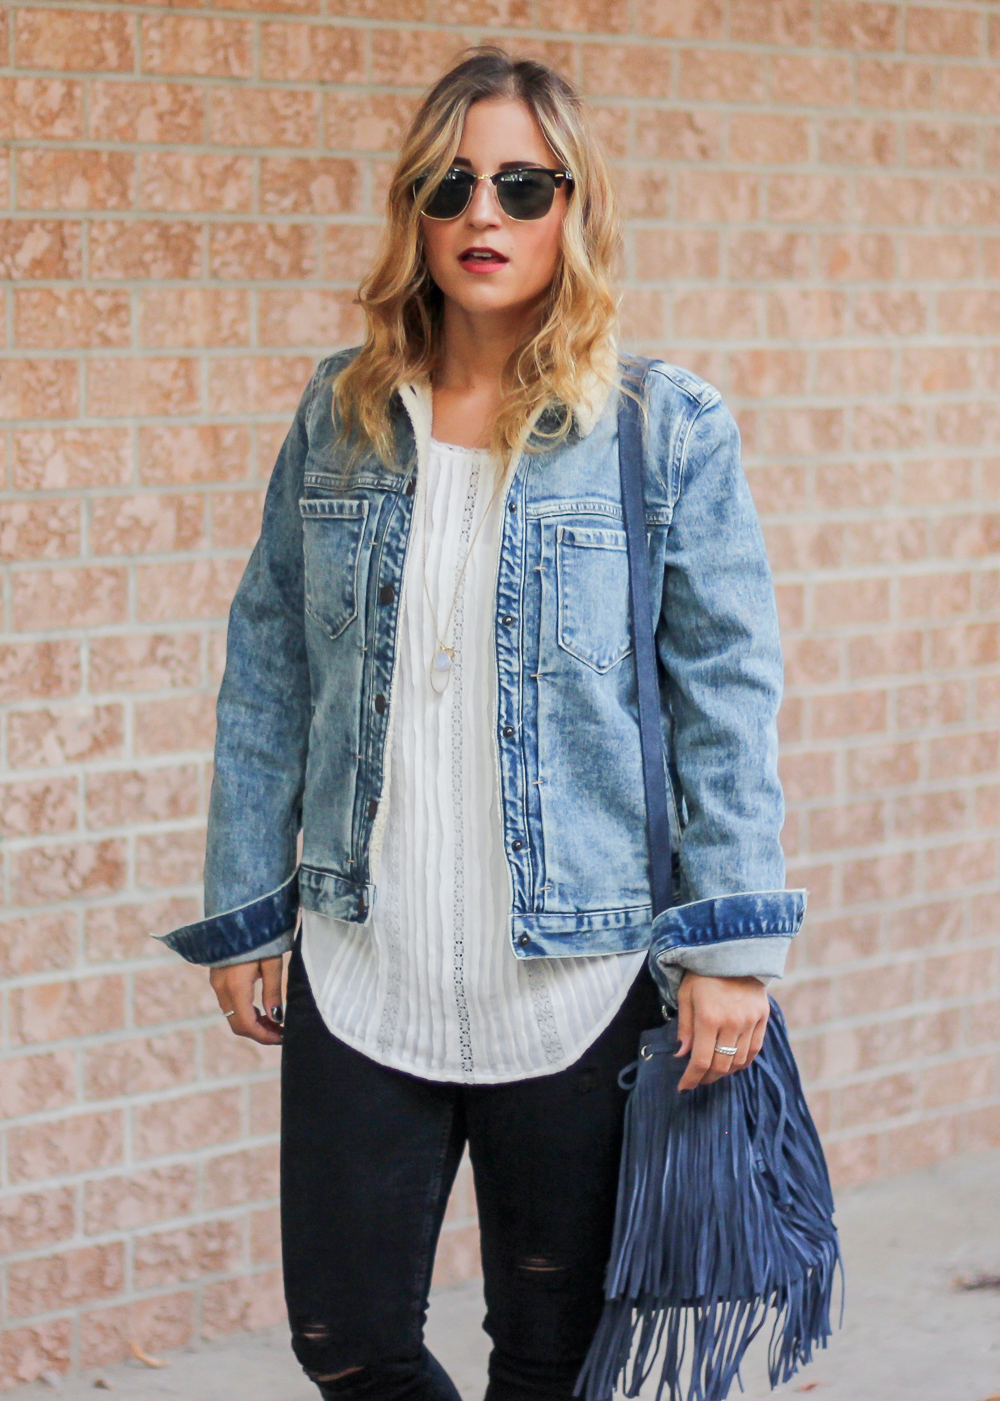 Gap 1969 Sherpa Denim Jacket, White Blouse and Ripped black Skinny jeans from Zara